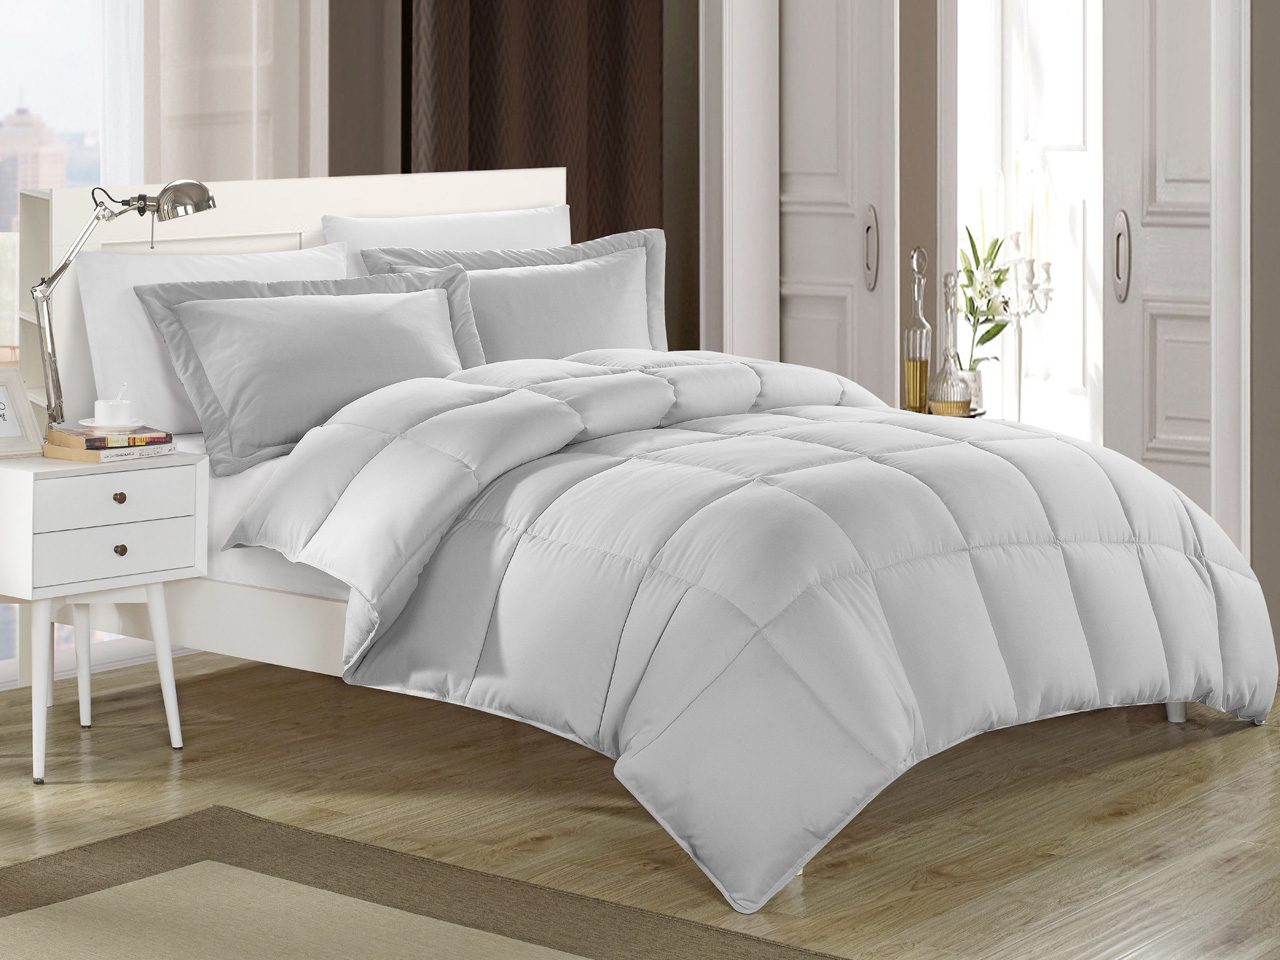 kinglinen down alternative comforter set ebay. Black Bedroom Furniture Sets. Home Design Ideas